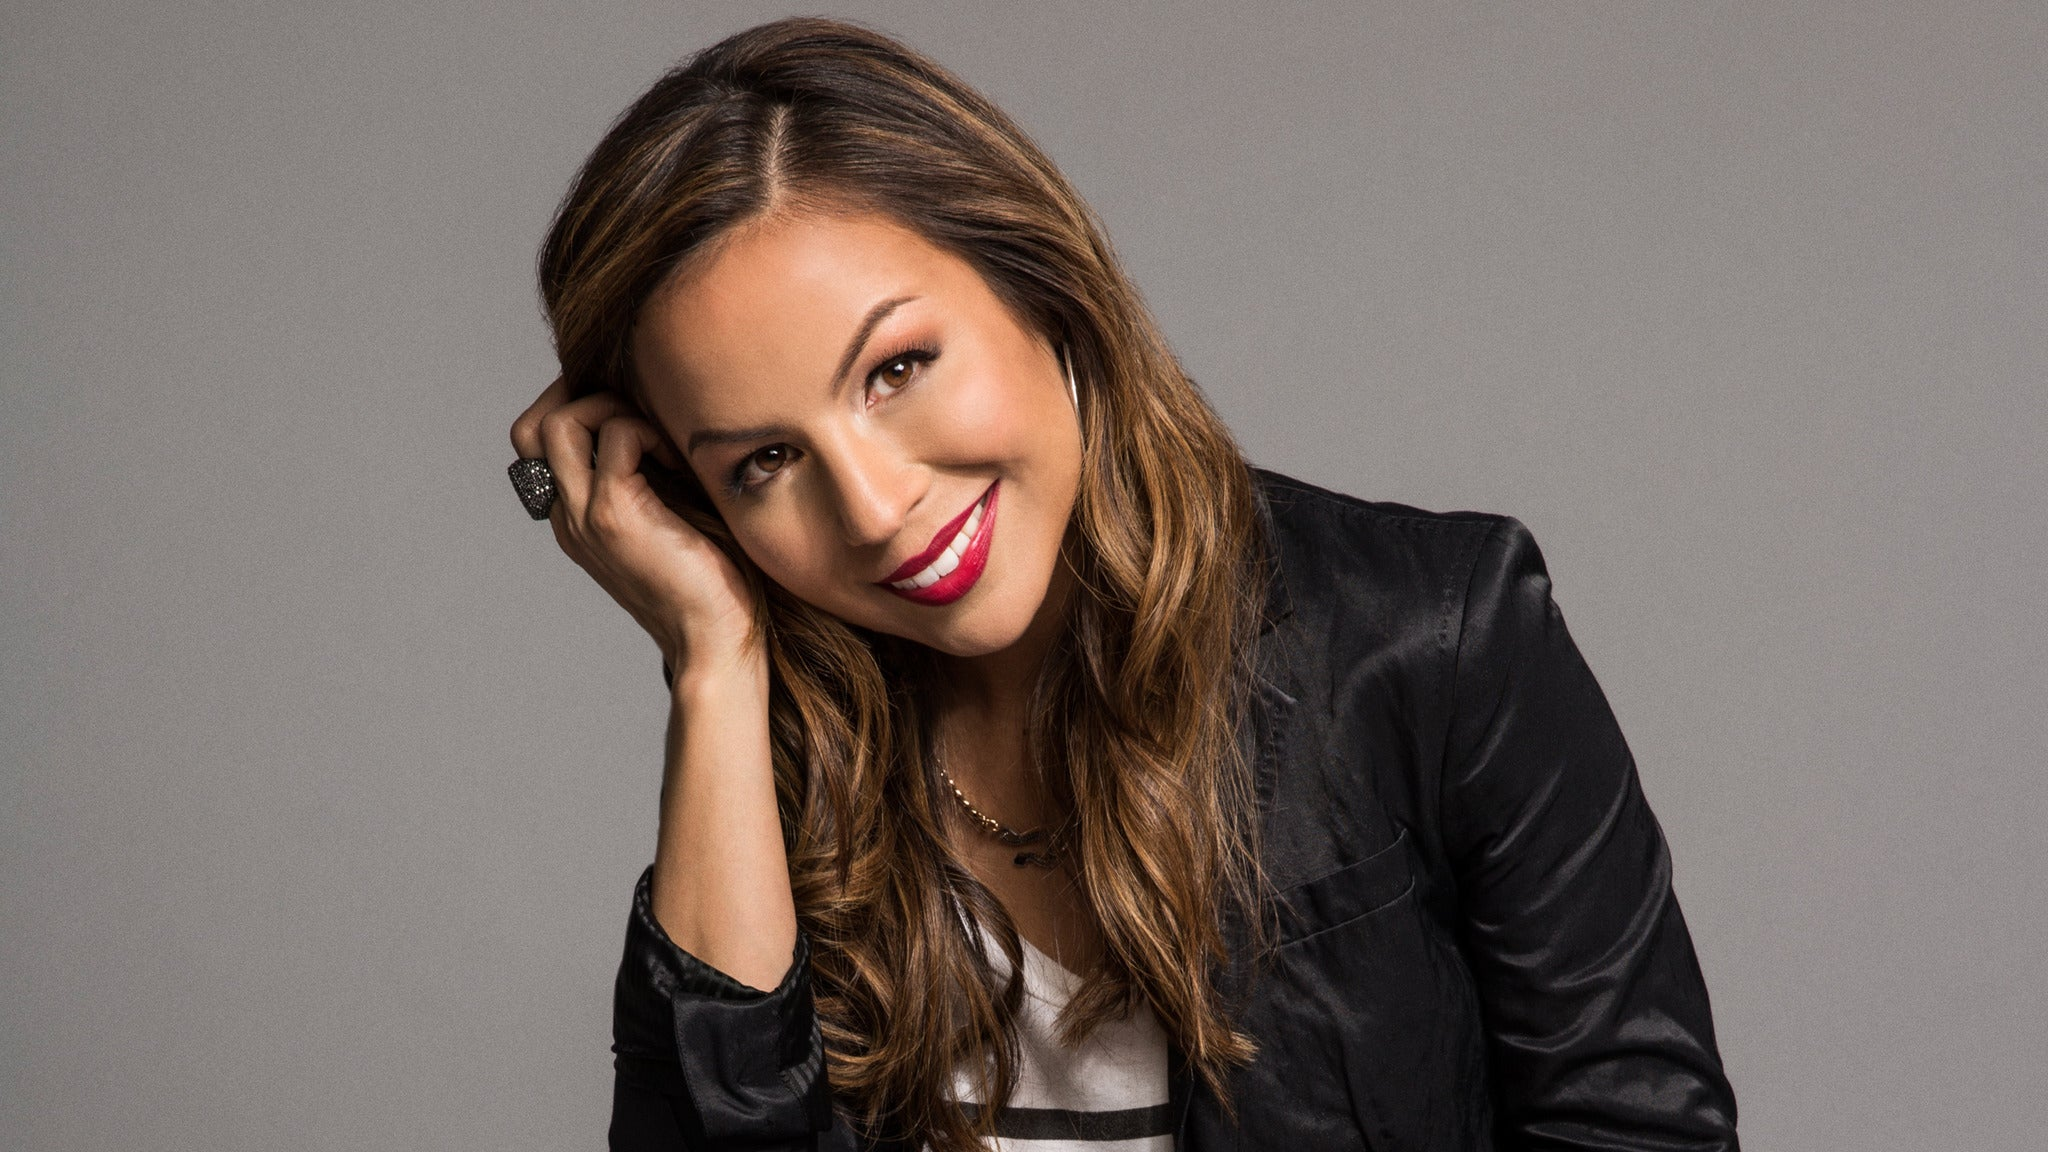 Anjelah Johnson at Ontario Improv - Ontario, CA 91764